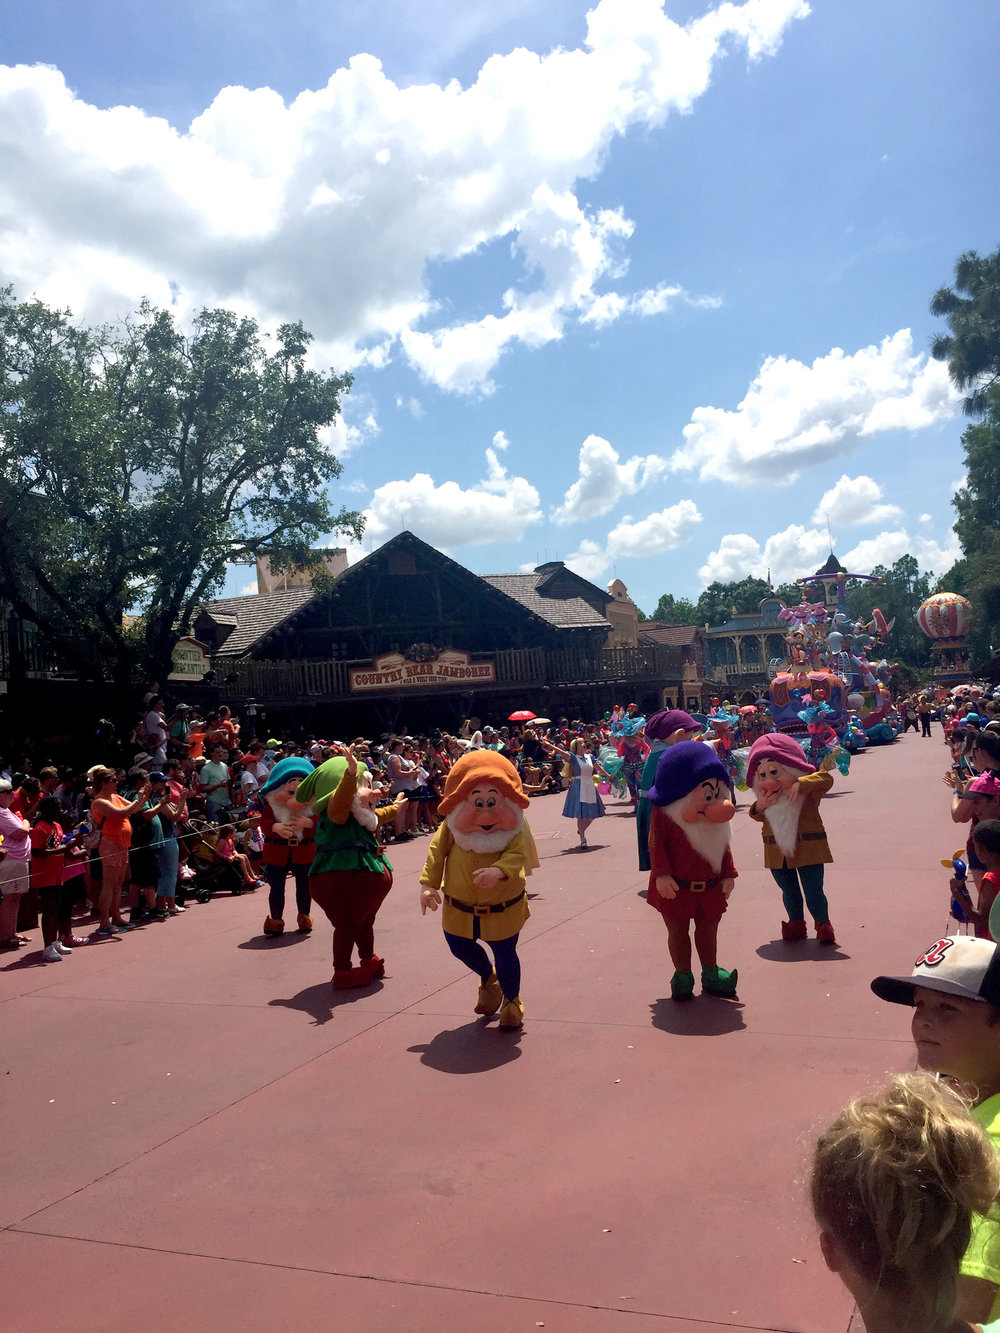 The Festival of Fantasy parade in Magic Kingdom features 40 characters! Even though you might not get to meet them one-on-one, this is definitely not the spectical that you want to miss!